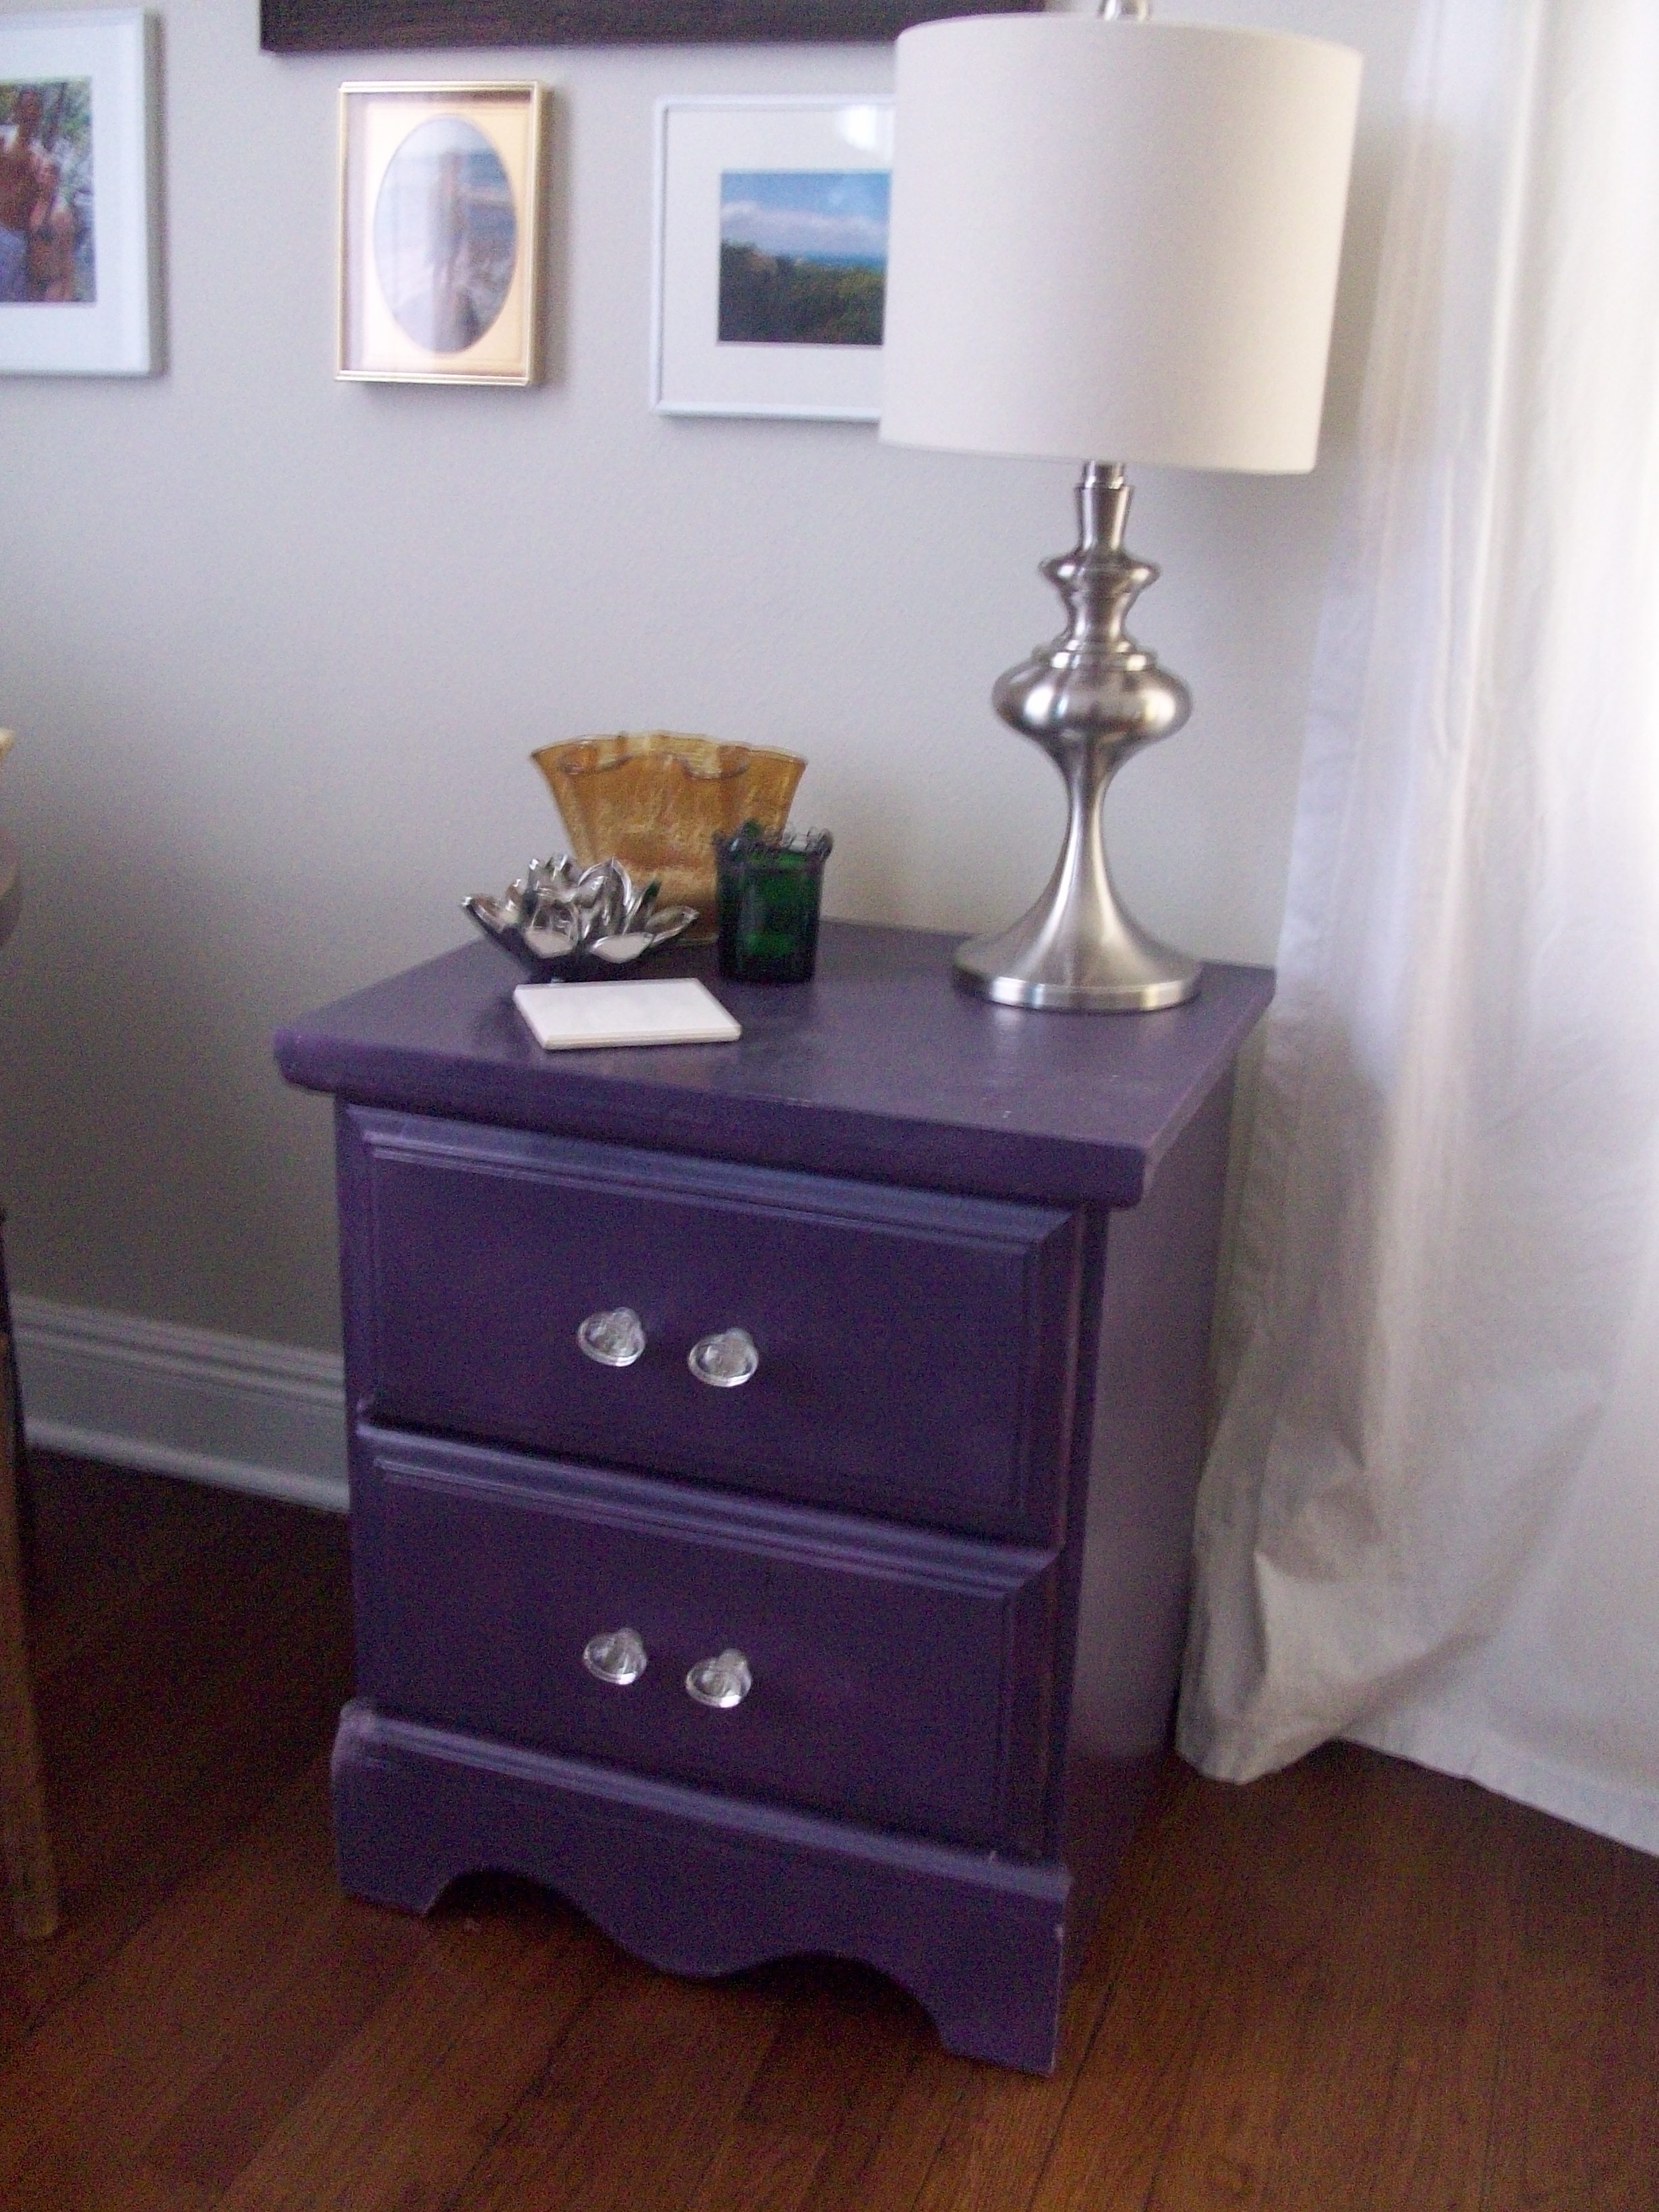 how to paint furniture the good enough method living well on the. Black Bedroom Furniture Sets. Home Design Ideas